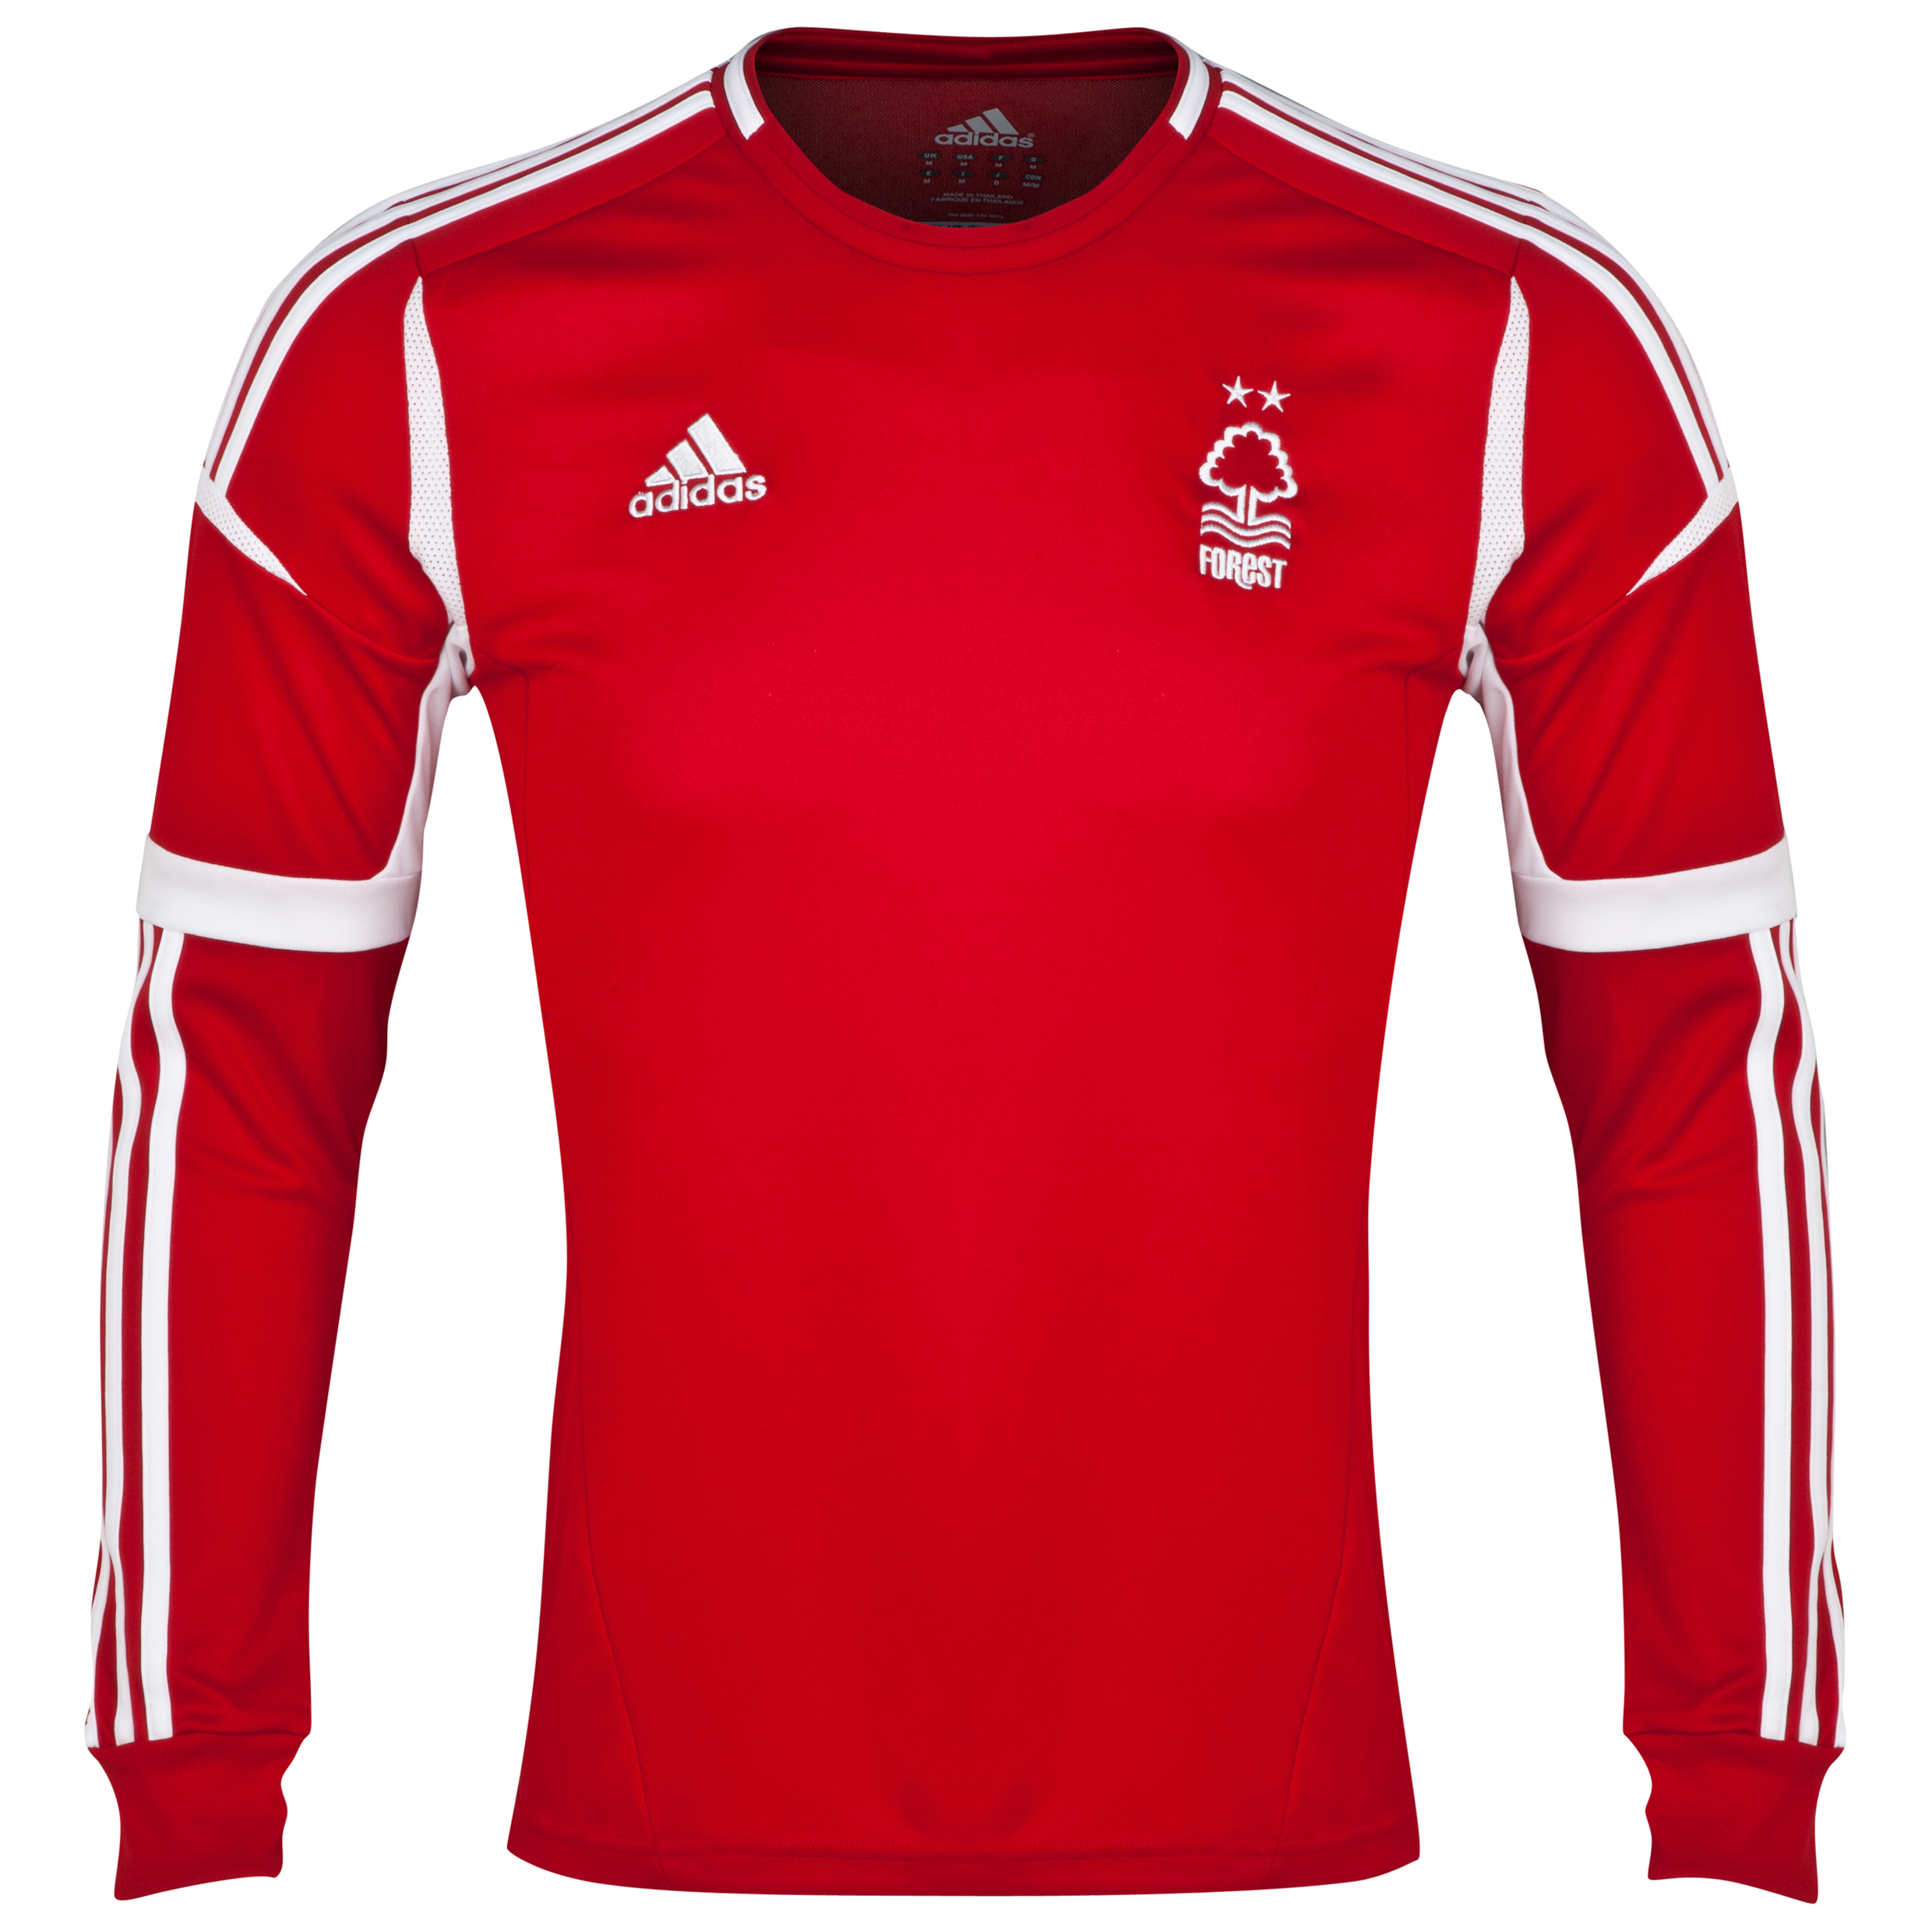 Nottingham Forest Home Shirt 2013/14 - Long Sleeved